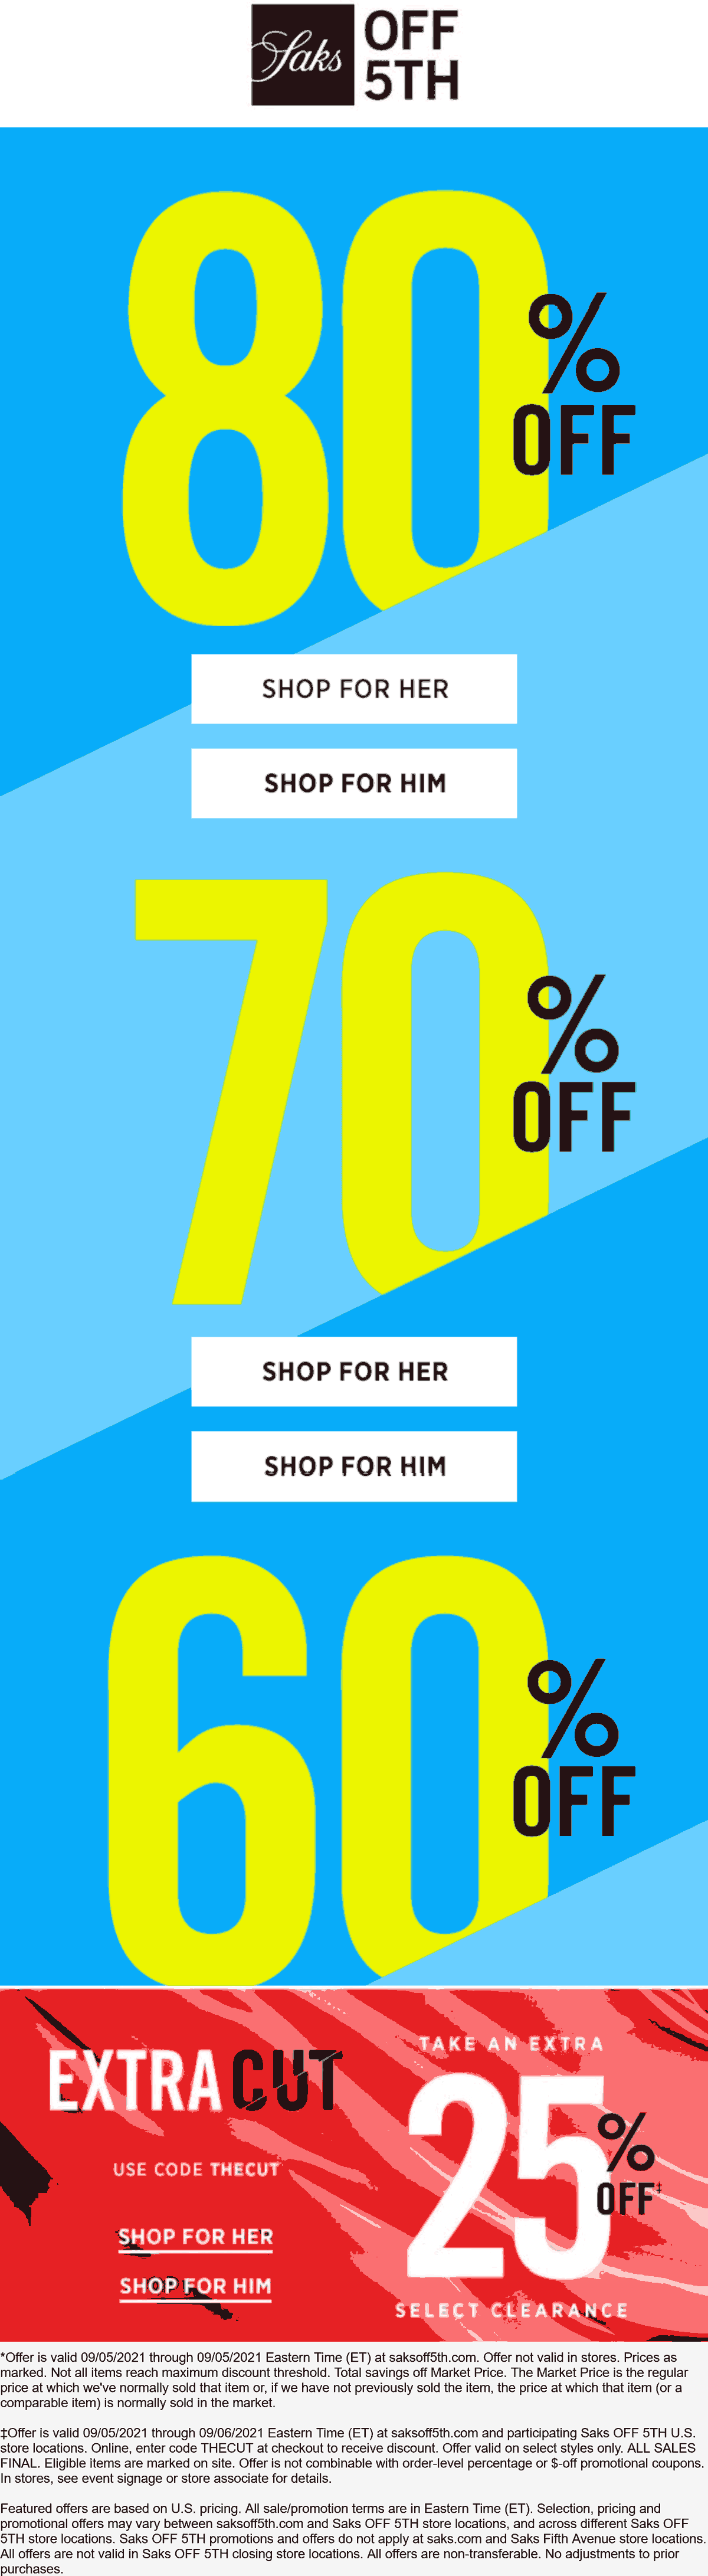 OFF 5TH stores Coupon  Extra 25% off clearance & more at Saks OFF 5TH, or online via promo code THECUT #off5th